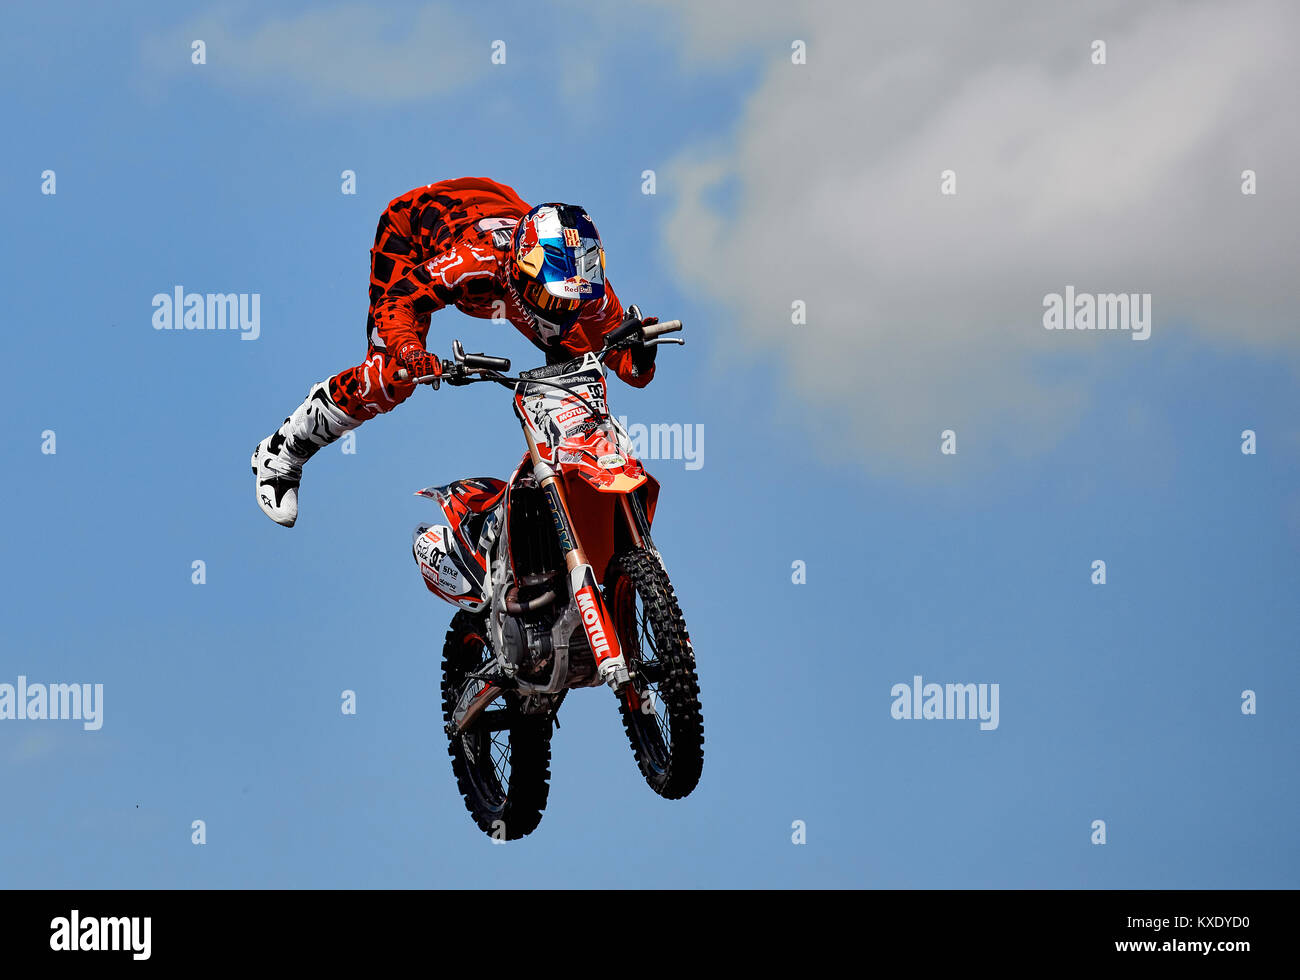 Professional rider at the FMX (Freestyle Motocross) make an acrobatic jump at the motorshow. Rostov Drive Show 2017. - Stock Image